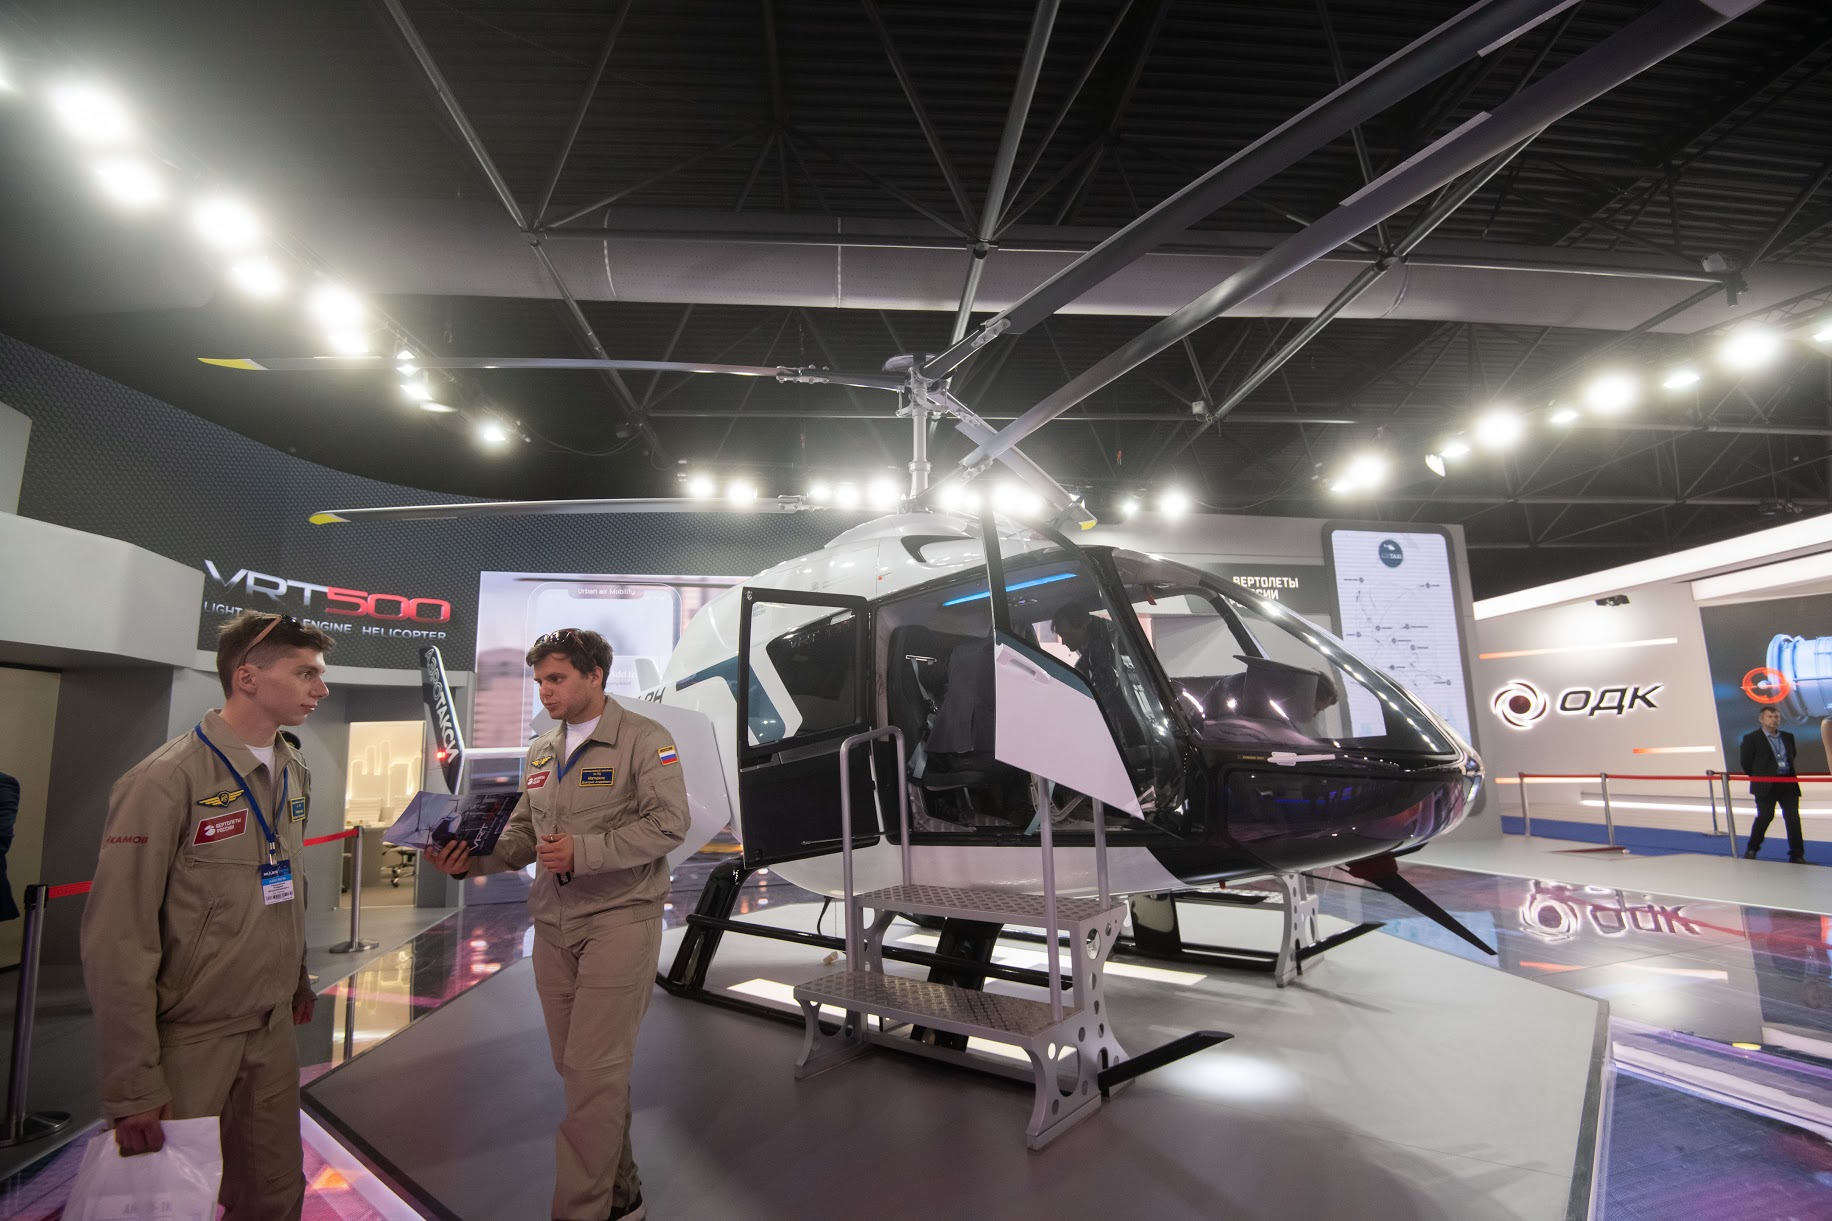 The VRT500 Helicopter Will be Equipped with Pratt & Whitney Engines